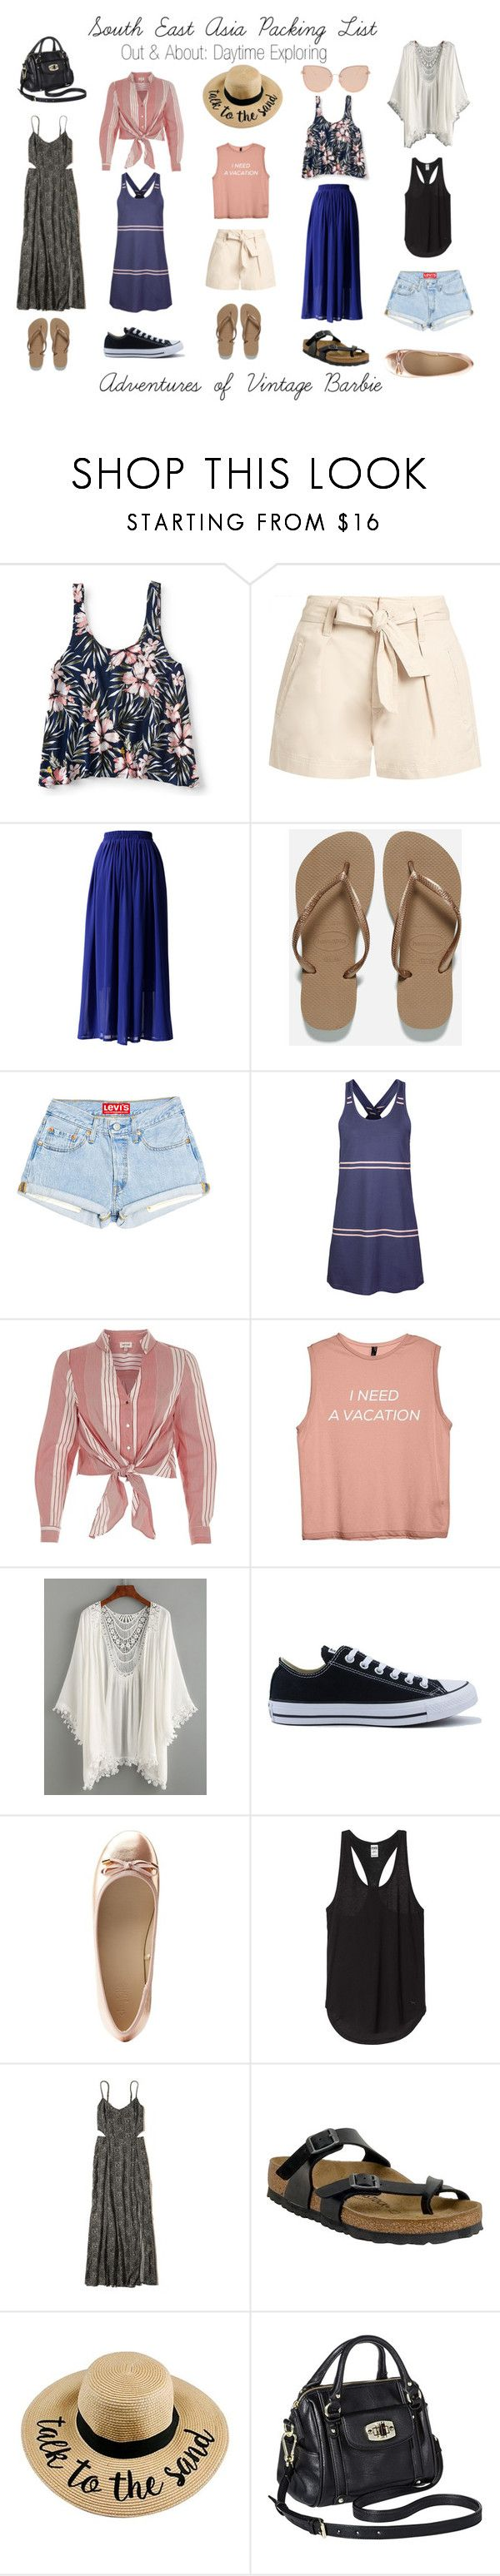 """""""South East Asia Packing Lost: Out and About"""" by vintagebarbie17 on Polyvore featuring Aéropostale, Étoile Isabel Marant, Chicwish, Havaianas, Dakine, River Island, Converse, Charlotte Russe, Hollister Co. and Birkenstock"""